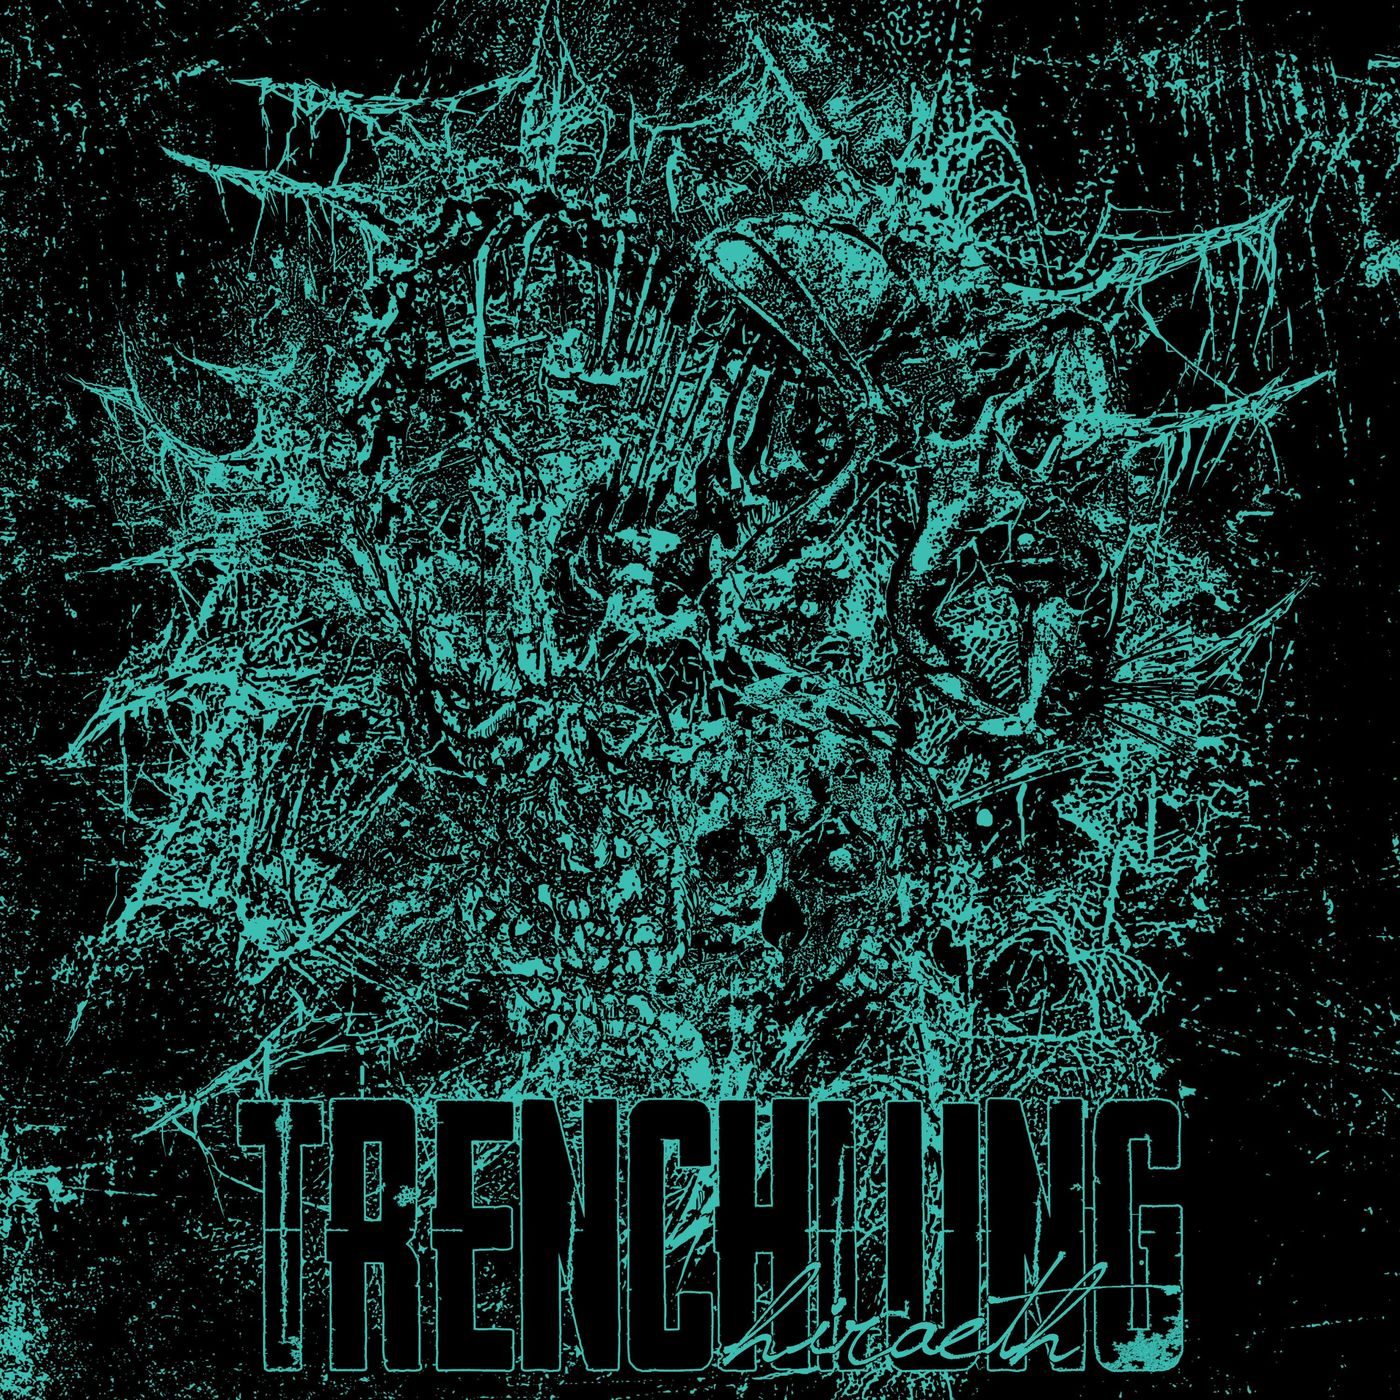 Trenchlung - Hiraeth